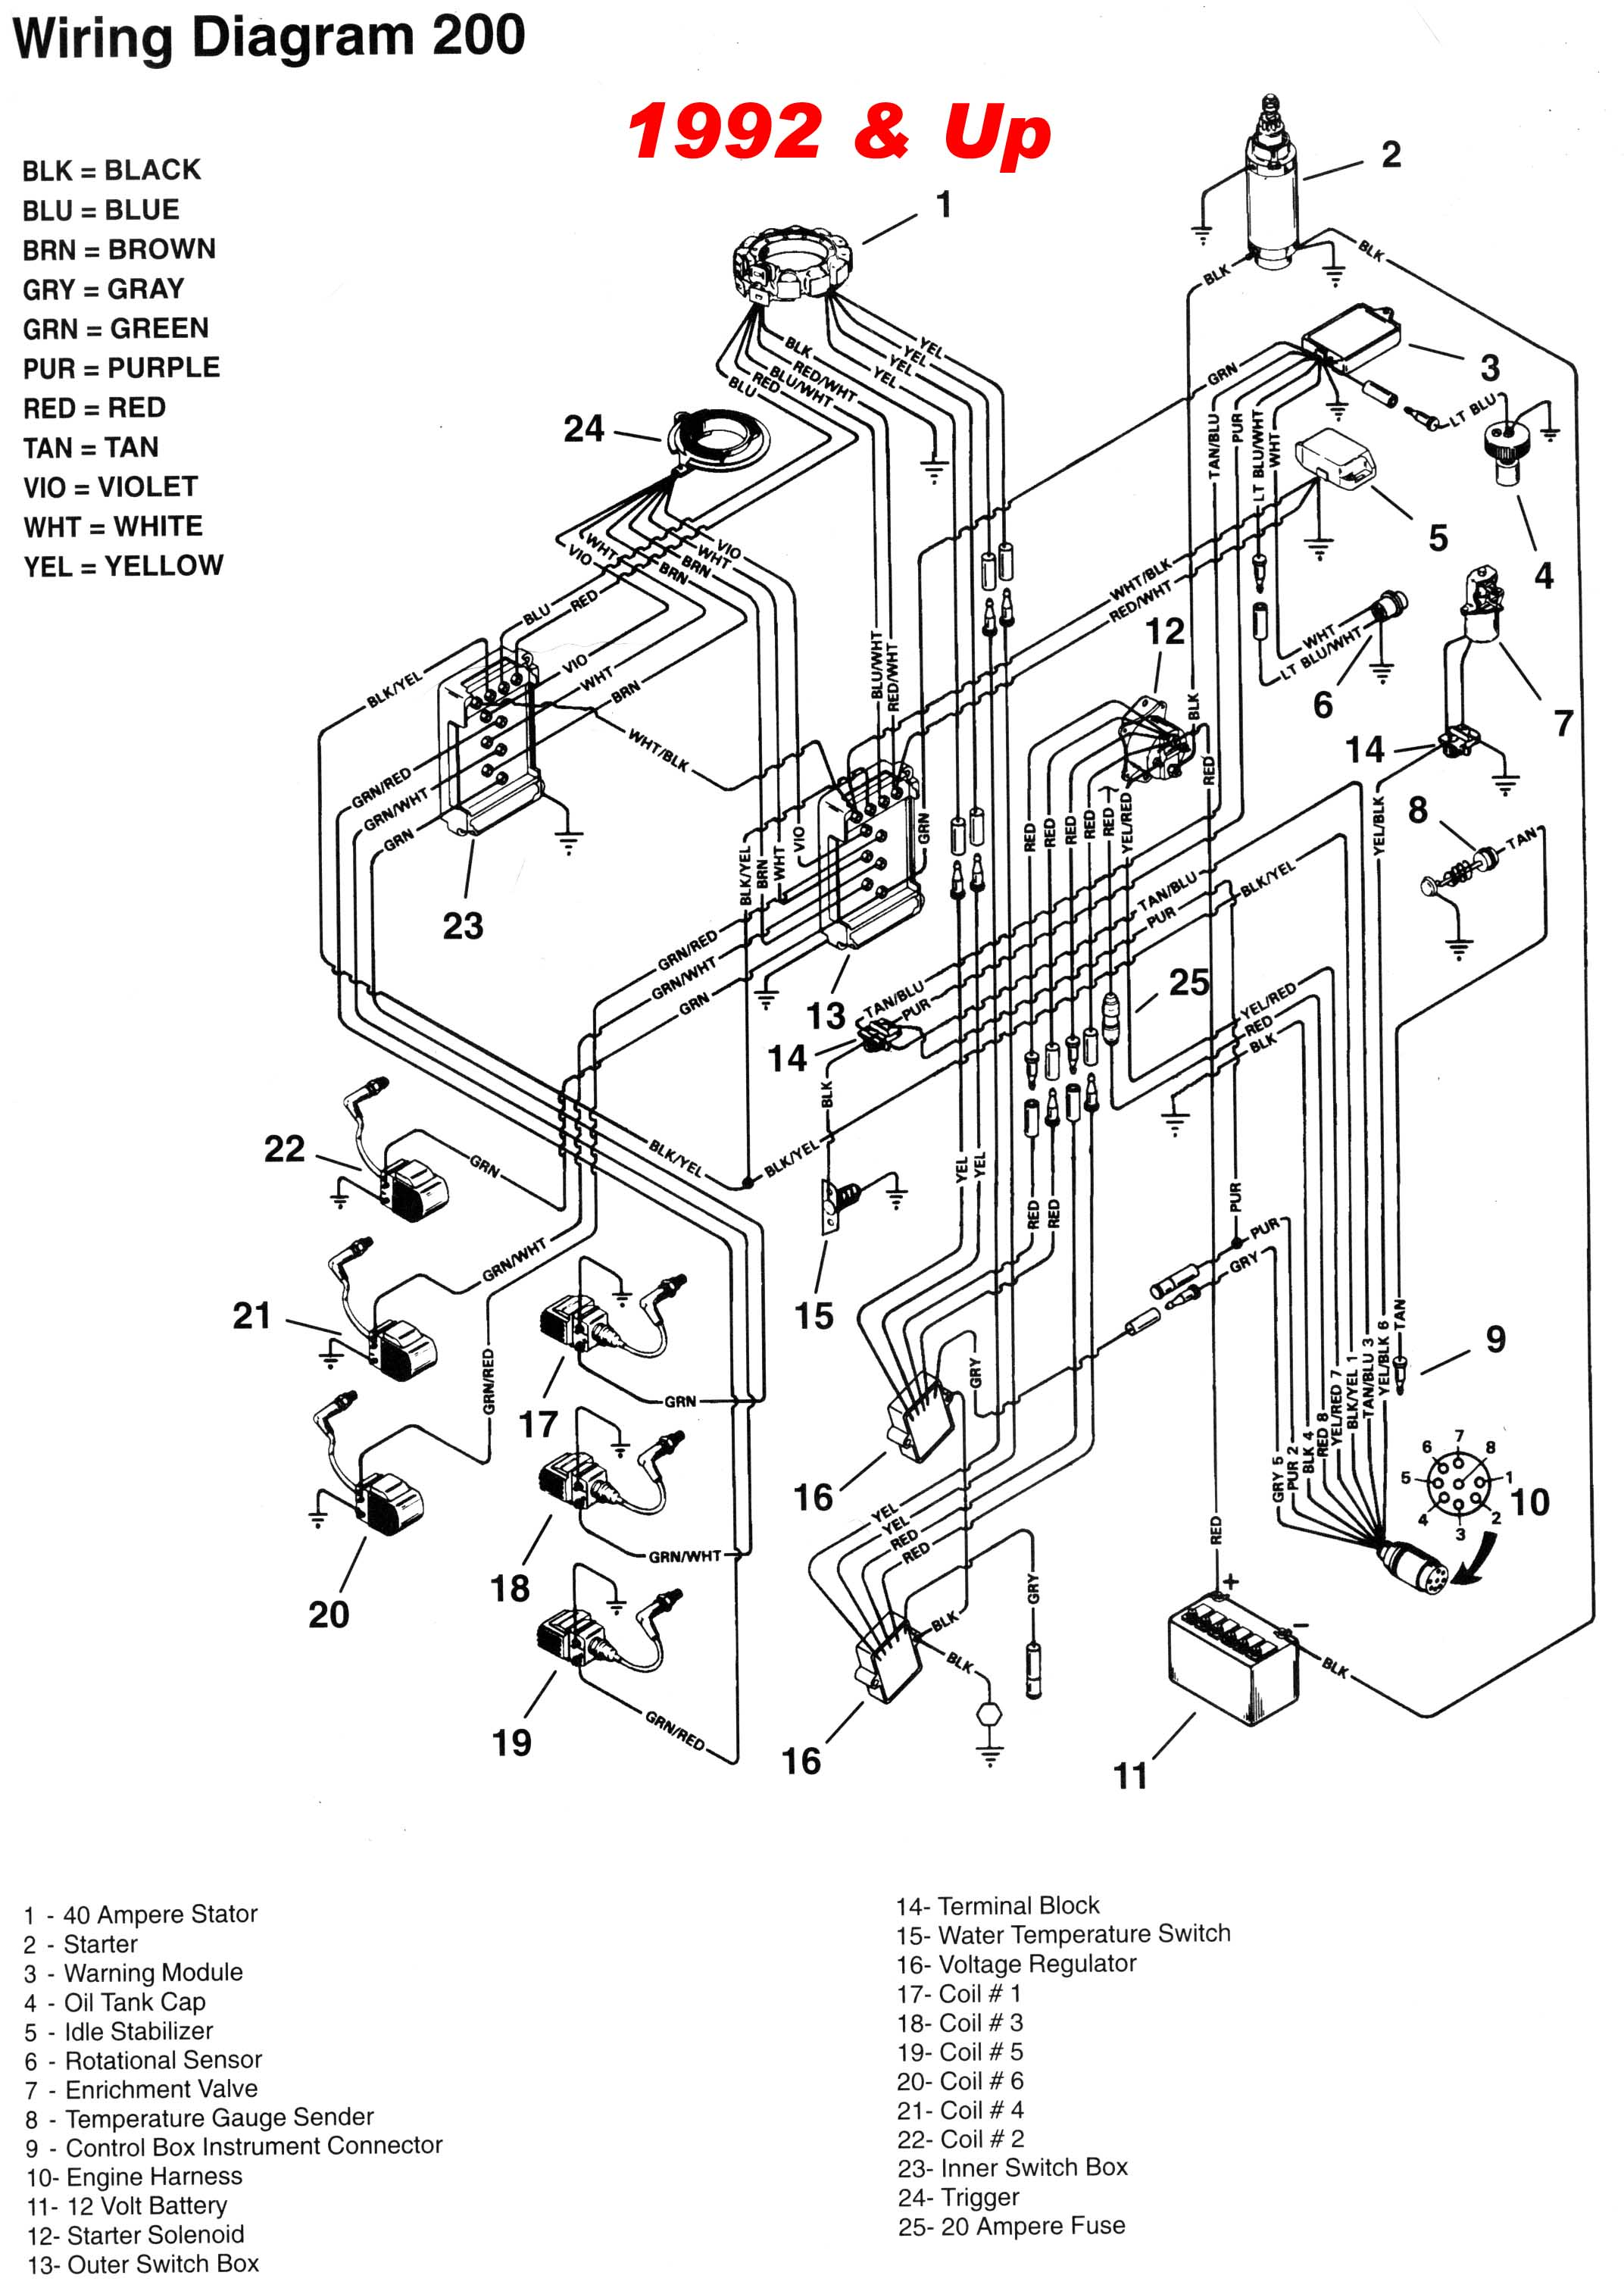 mercury_92up_200_wiring mercury outboard 2 5 and 3 0l v6 and gearcase faq mercury wiring diagram at webbmarketing.co